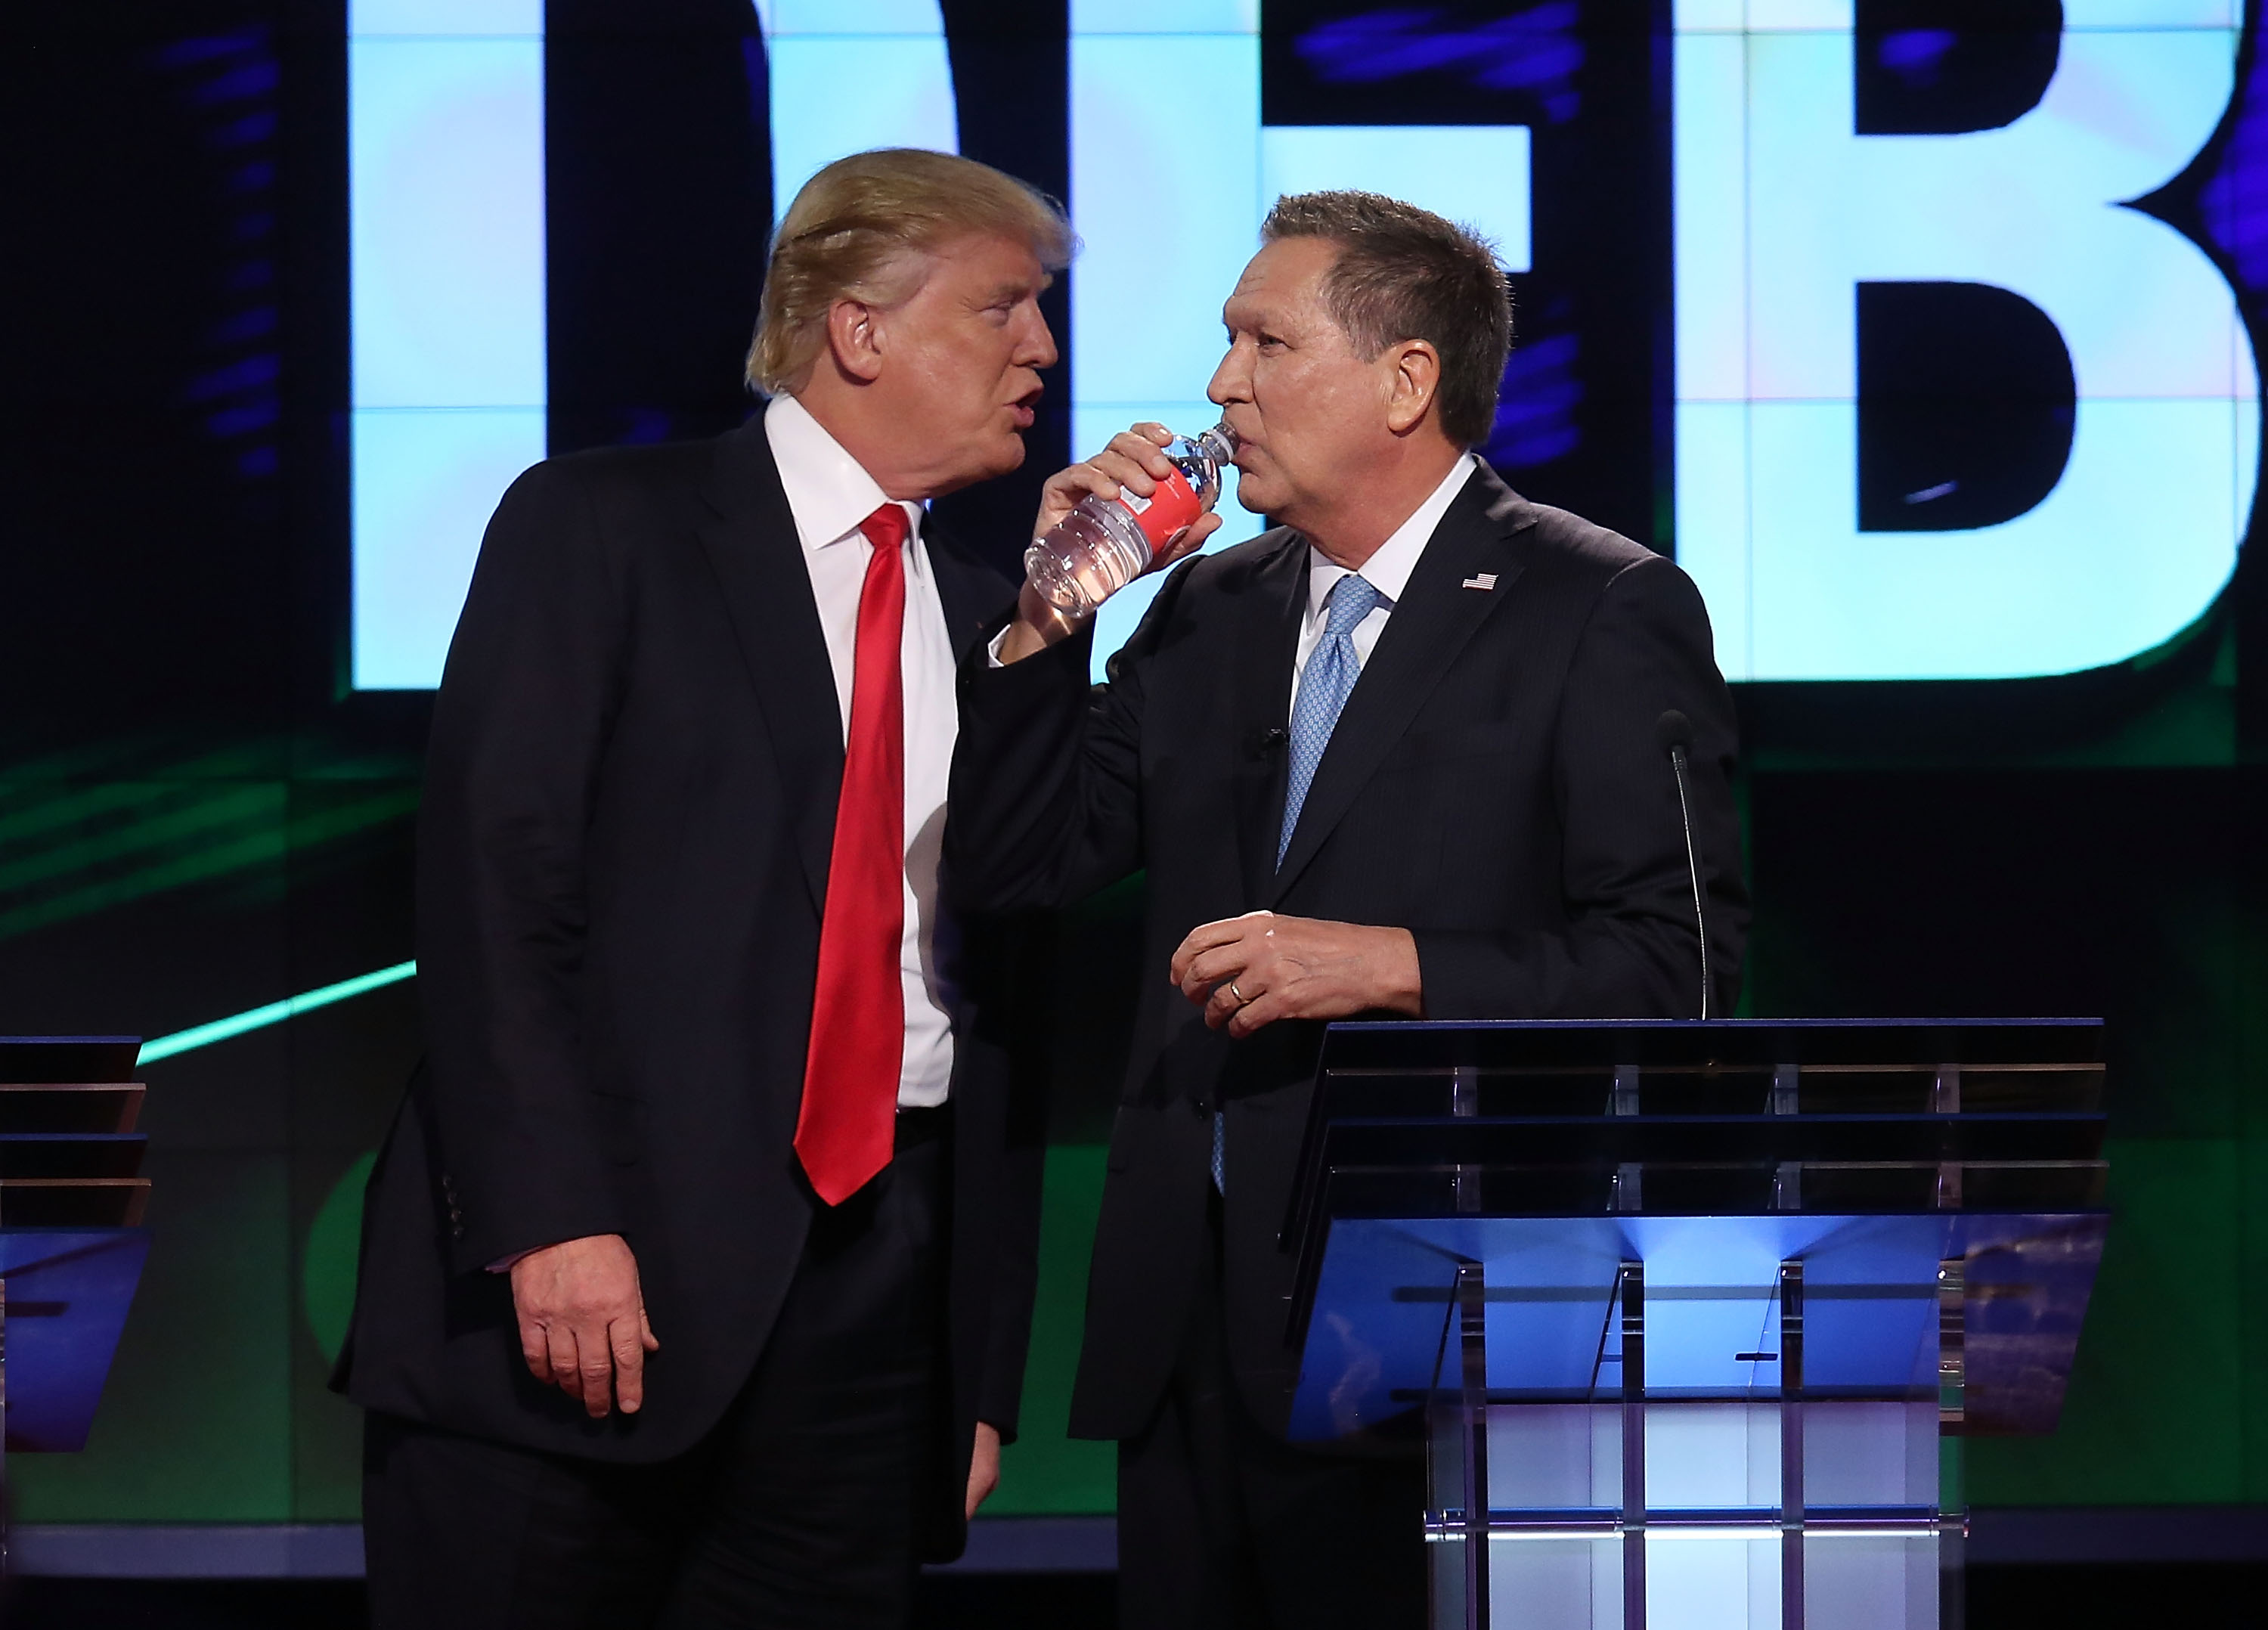 CORAL GABLES, FL - MARCH 10: Republican presidential candidates, Donald Trump and Ohio Gov. John Kasich are seen during a broadcast break of the CNN, Salem Media Group, The Washington Times Republican Presidential Primary Debate on the campus of the University of Miami on March 10, 2016 in Coral Gables, Florida. The candidates continue to campaign before the March 15th Florida primary. (Photo by Joe Raedle/Getty Images)